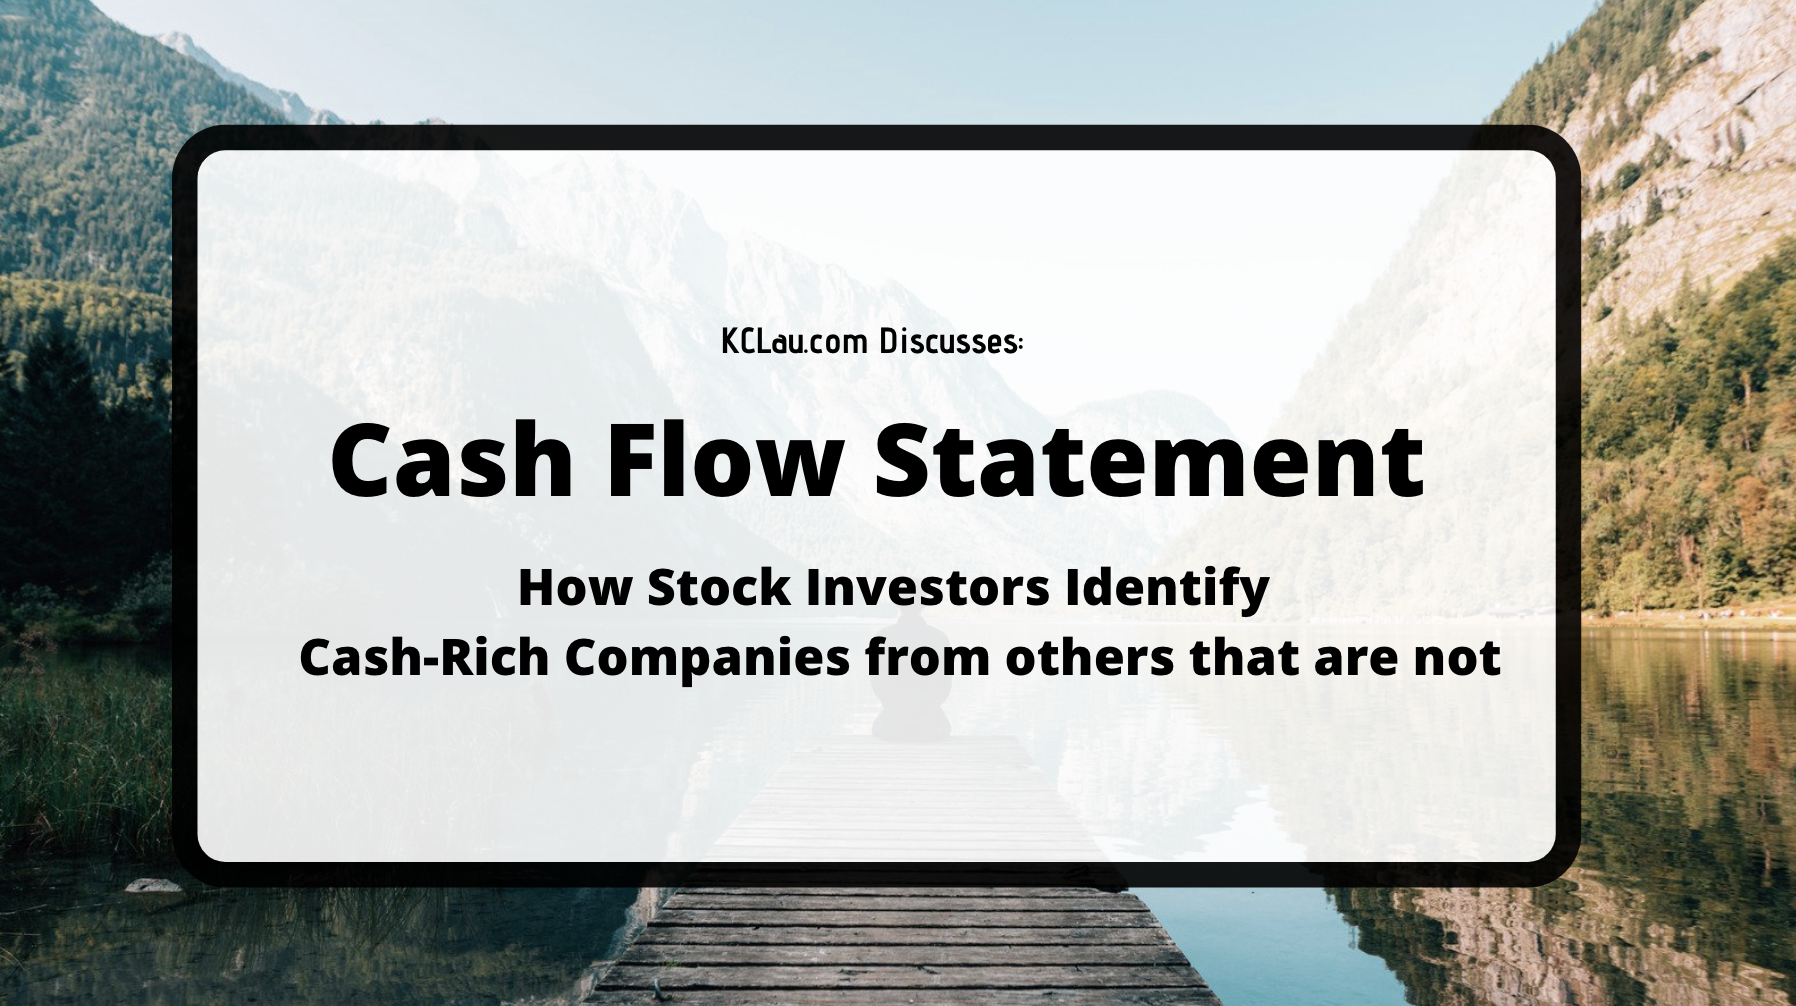 How do Stock Investors Read Cash Flow Statement of a Company?